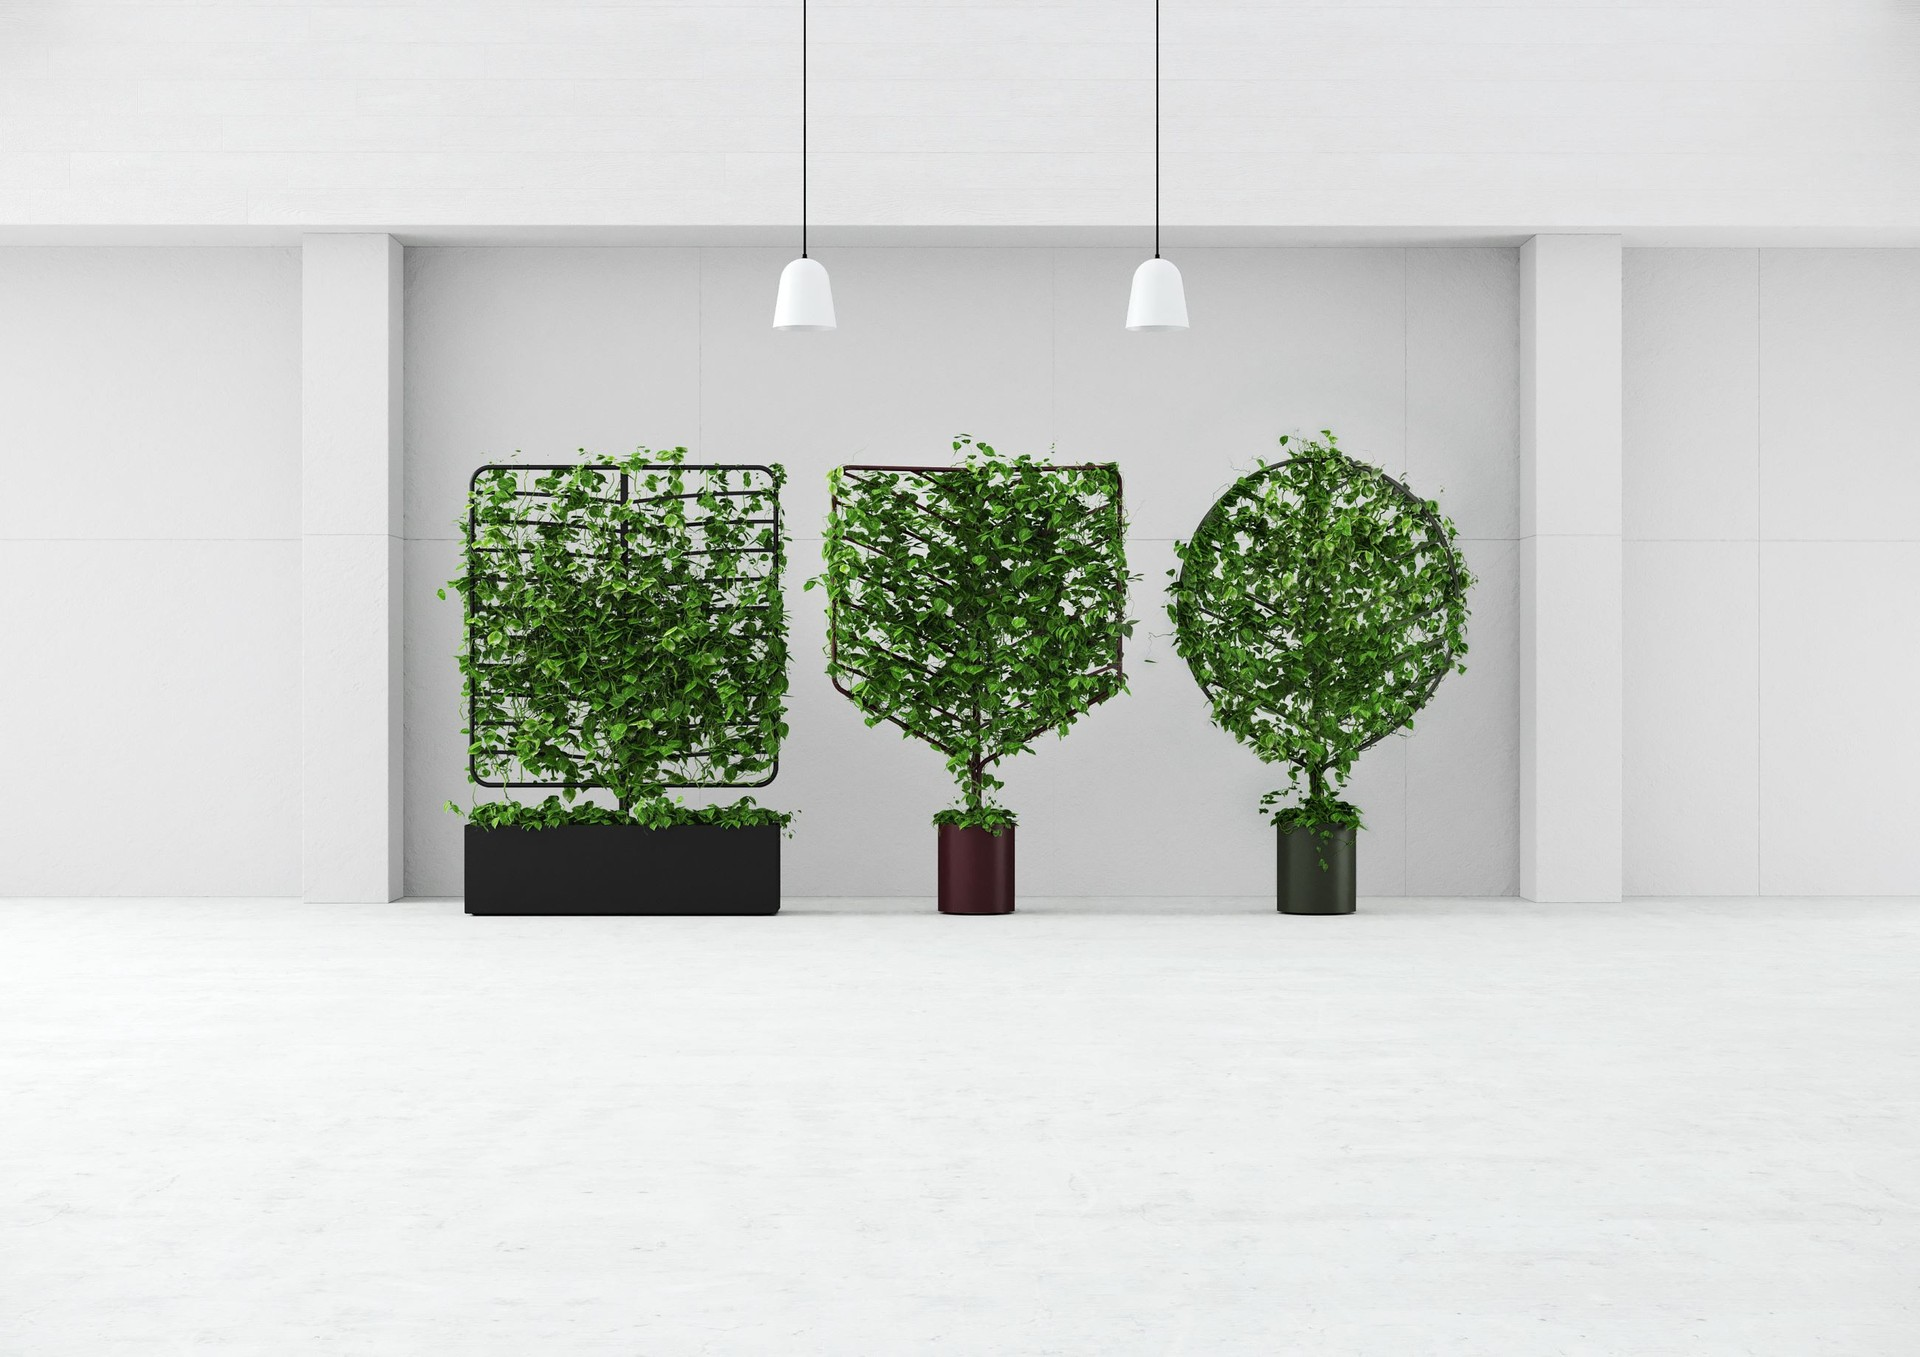 Planter screens in 3 shapes